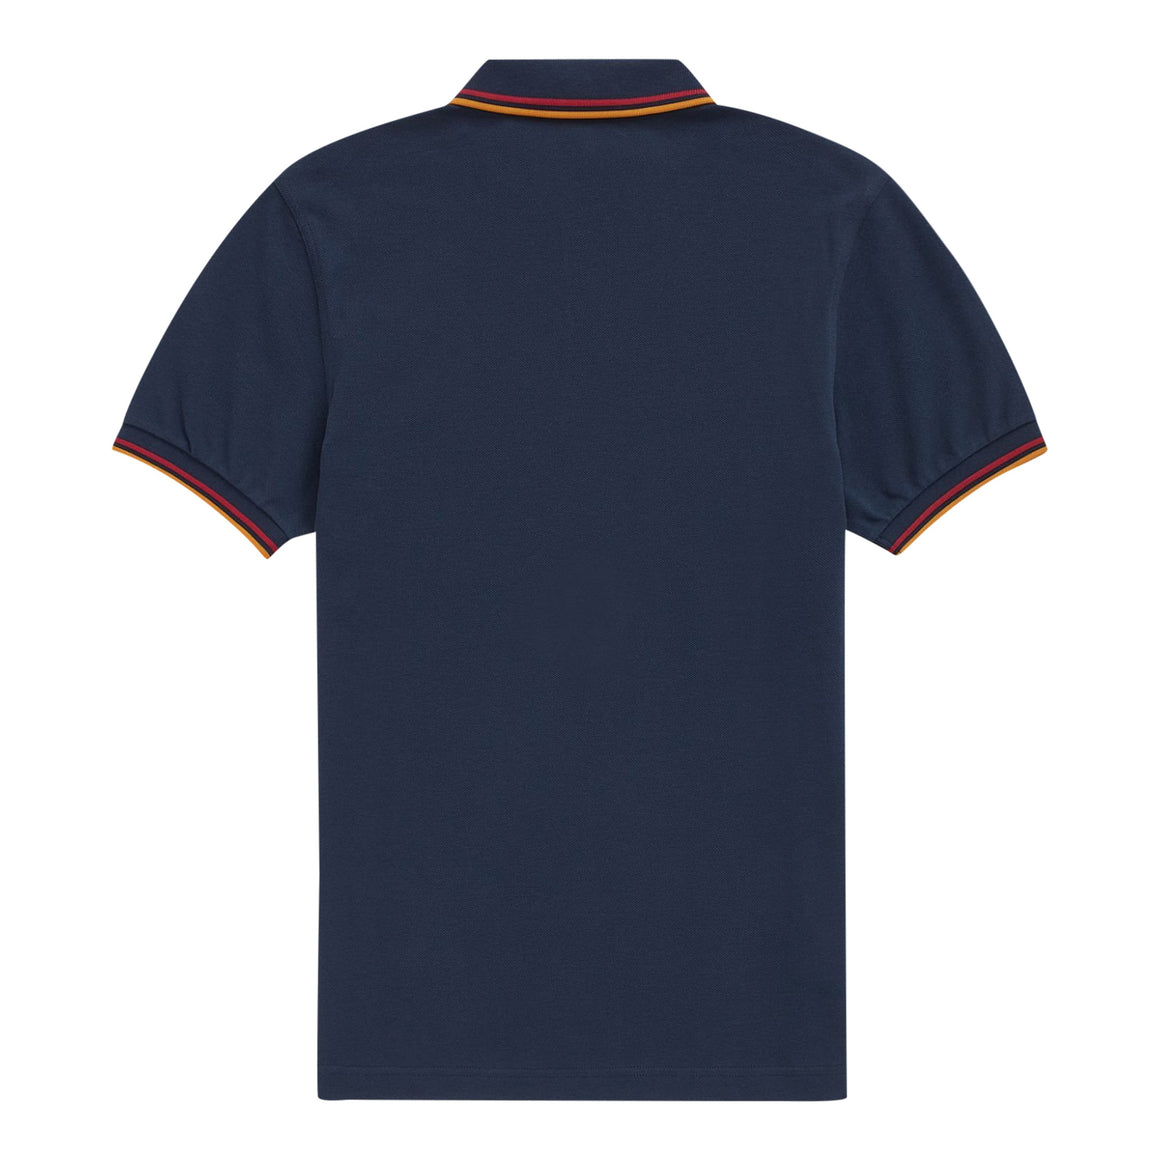 Twin Tipped Polo Shirt for Men in Deep Carbon